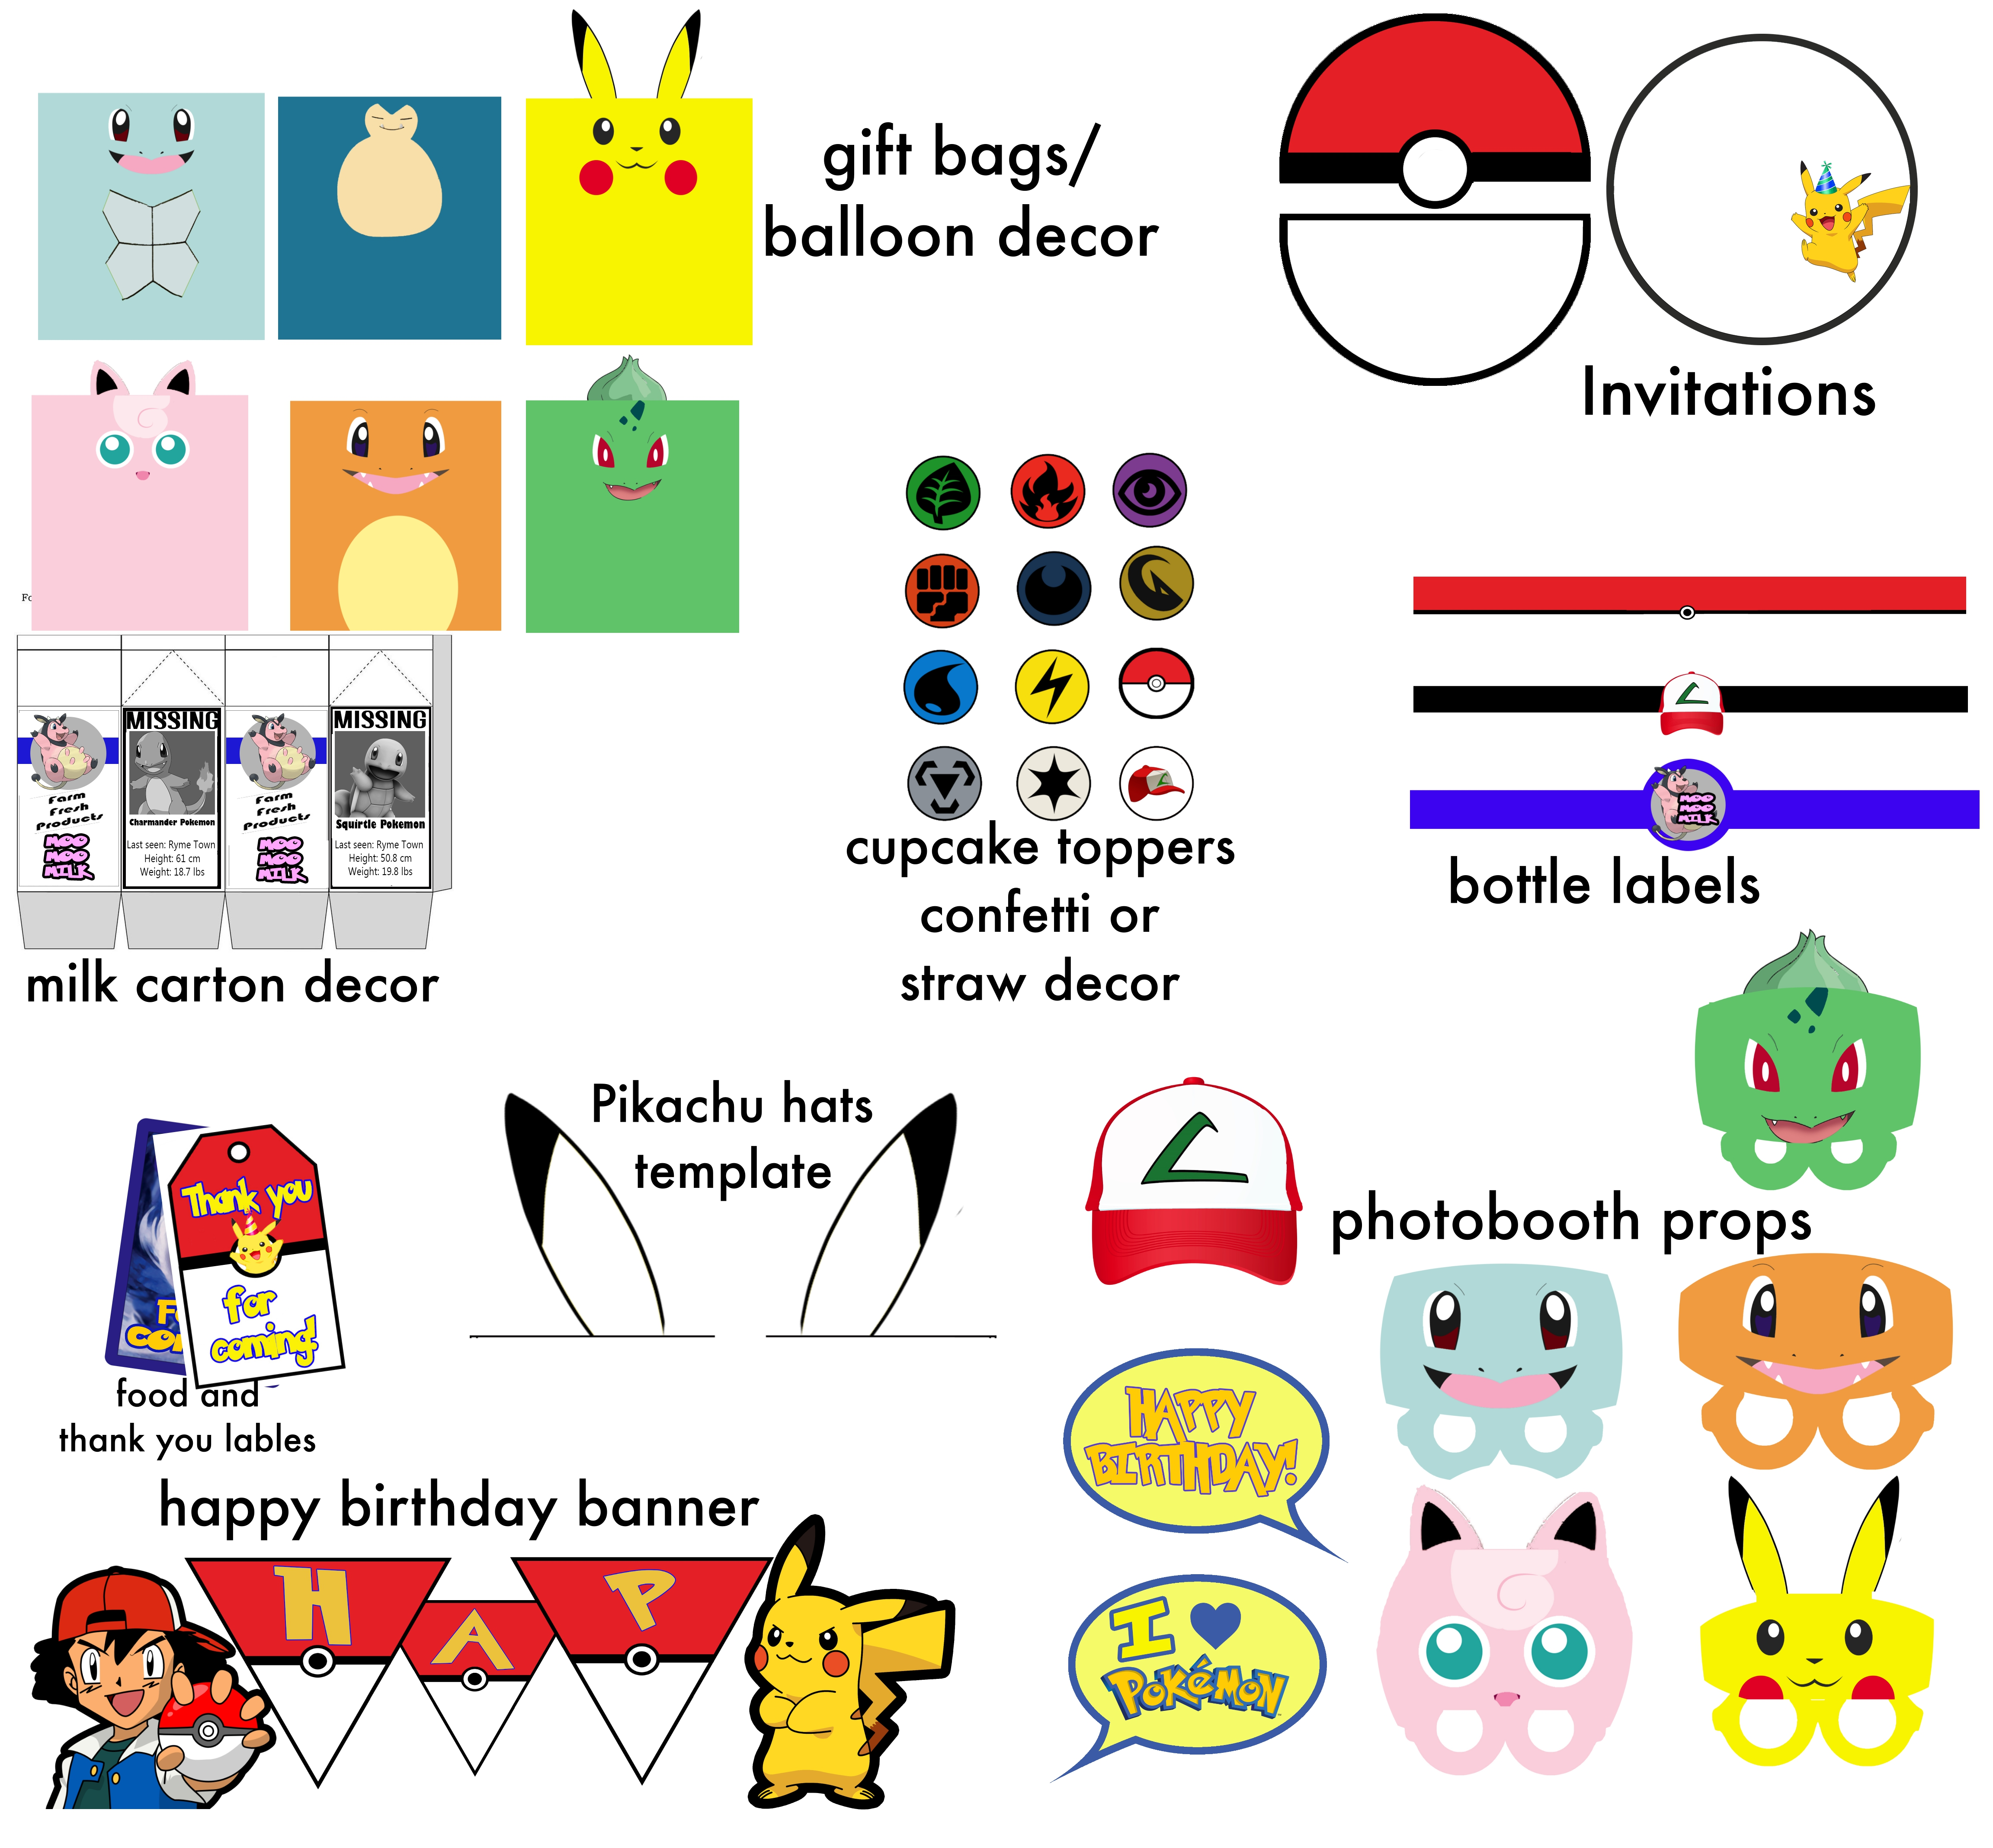 image regarding Pokemon Cupcake Toppers Printable named Do-it-yourself Pokemon Transfer Detective Pikachu Bash! Do-it-yourself Functions Channel